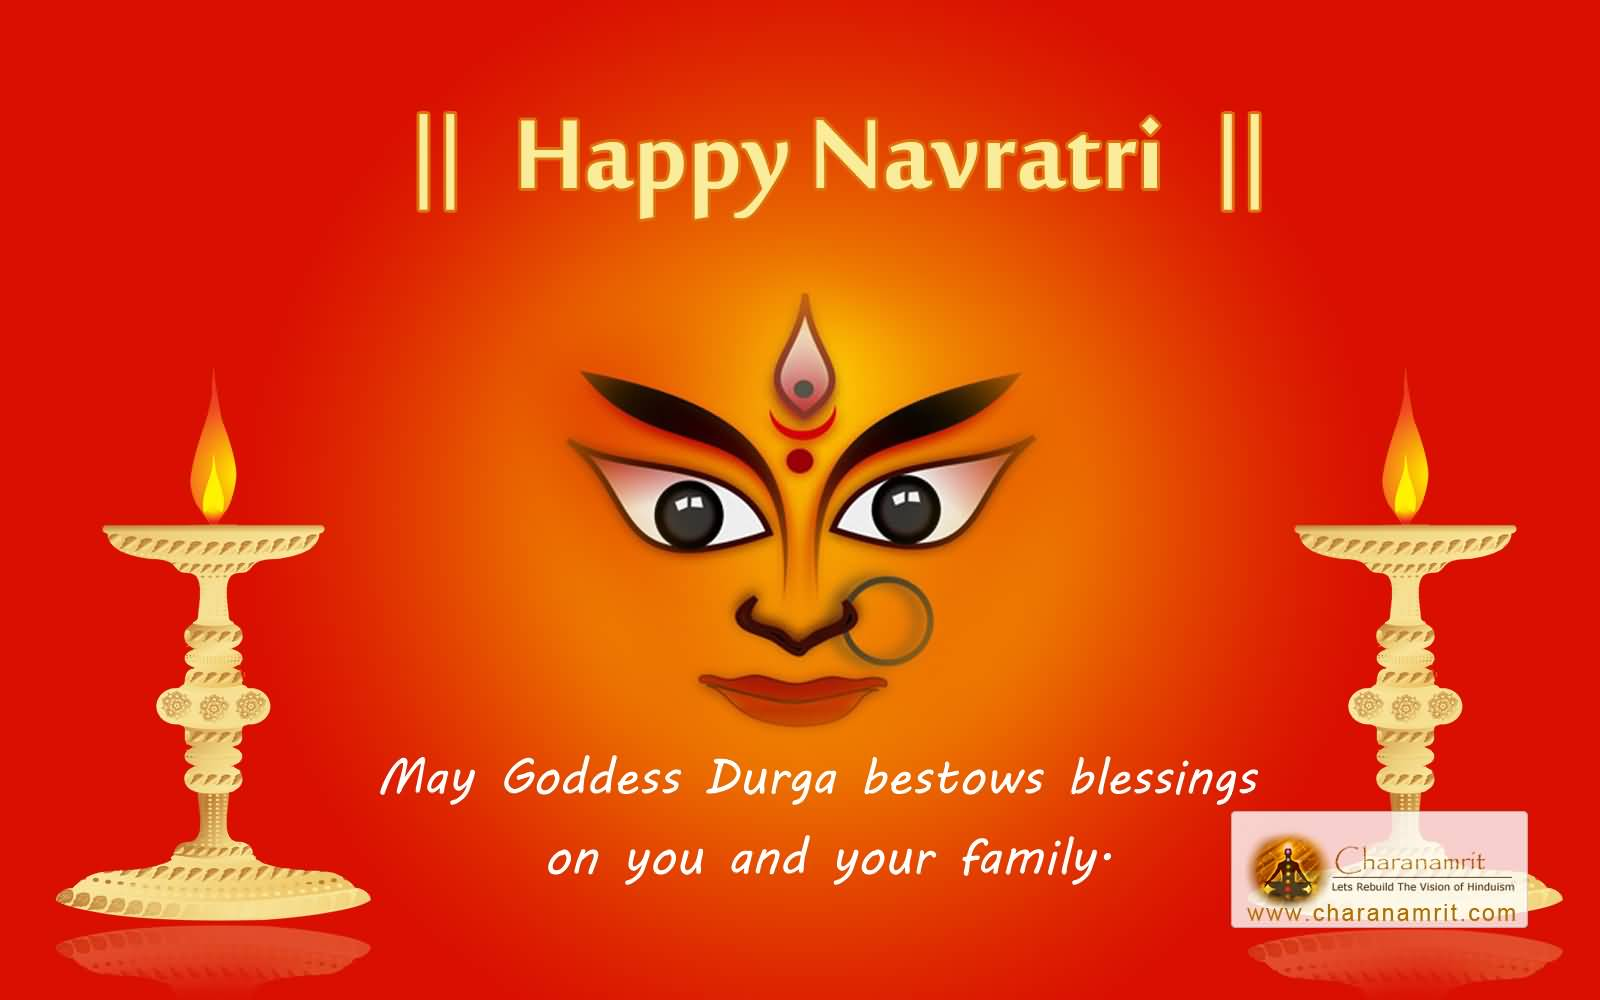 55 most beautiful happy navratri 2016 greeting images and photos happy navratri 2016 may goddess durga bestows blessings on you and your family kristyandbryce Choice Image